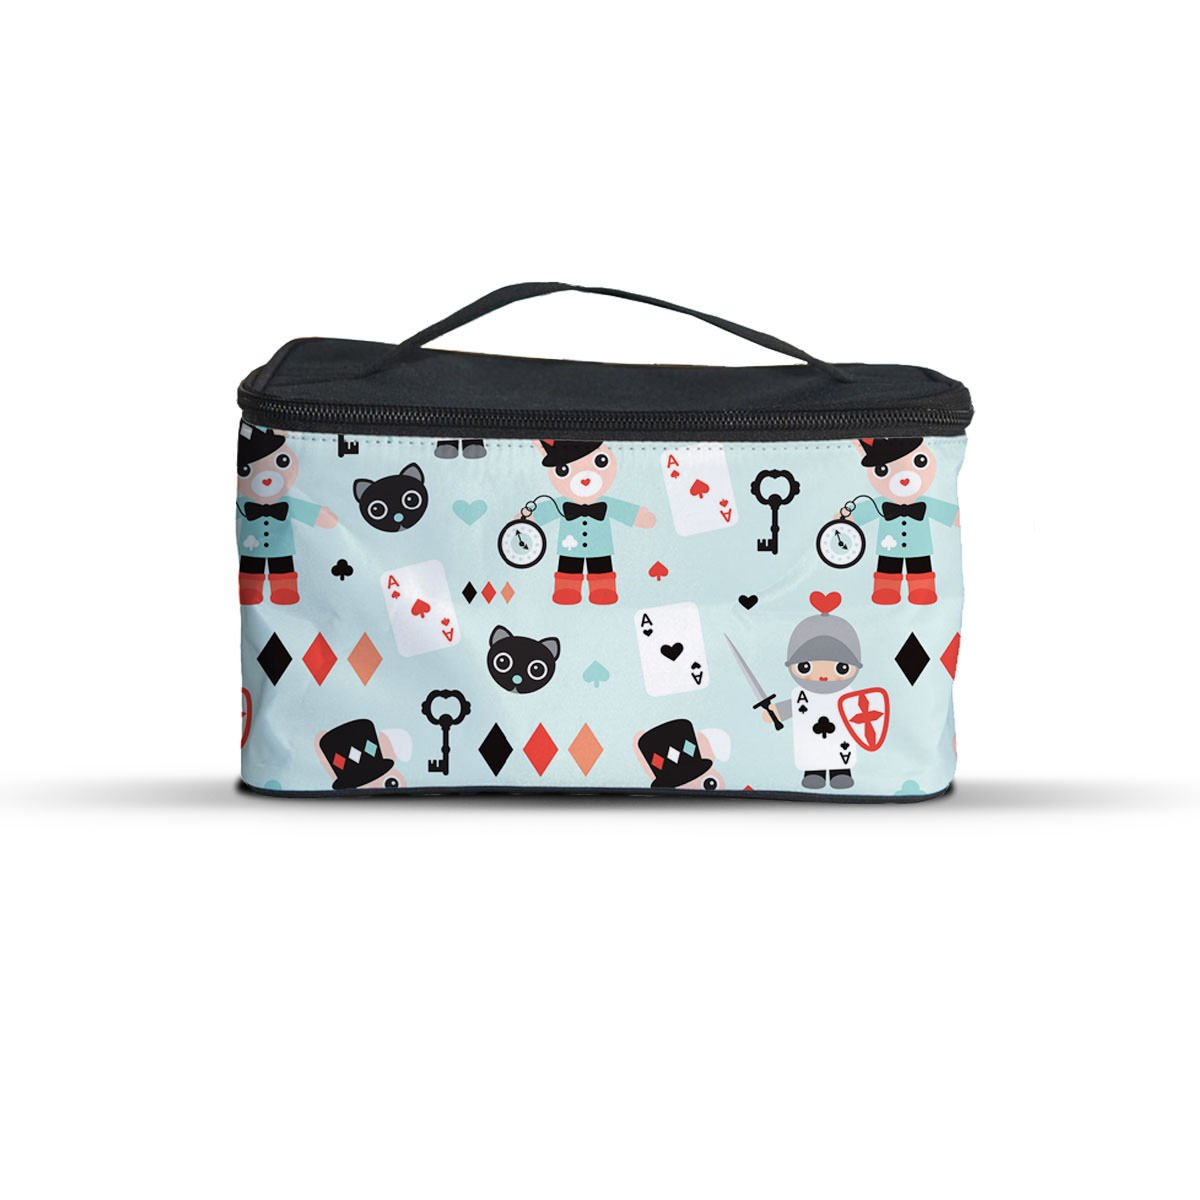 7580a6695285 Amazon.com  Queen of Cases Alice In Wonderland Friends Cosmetics Storage  Case - One Size Cosmetics Storage Case - Makeup Zipped Travel Bag  Home    Kitchen